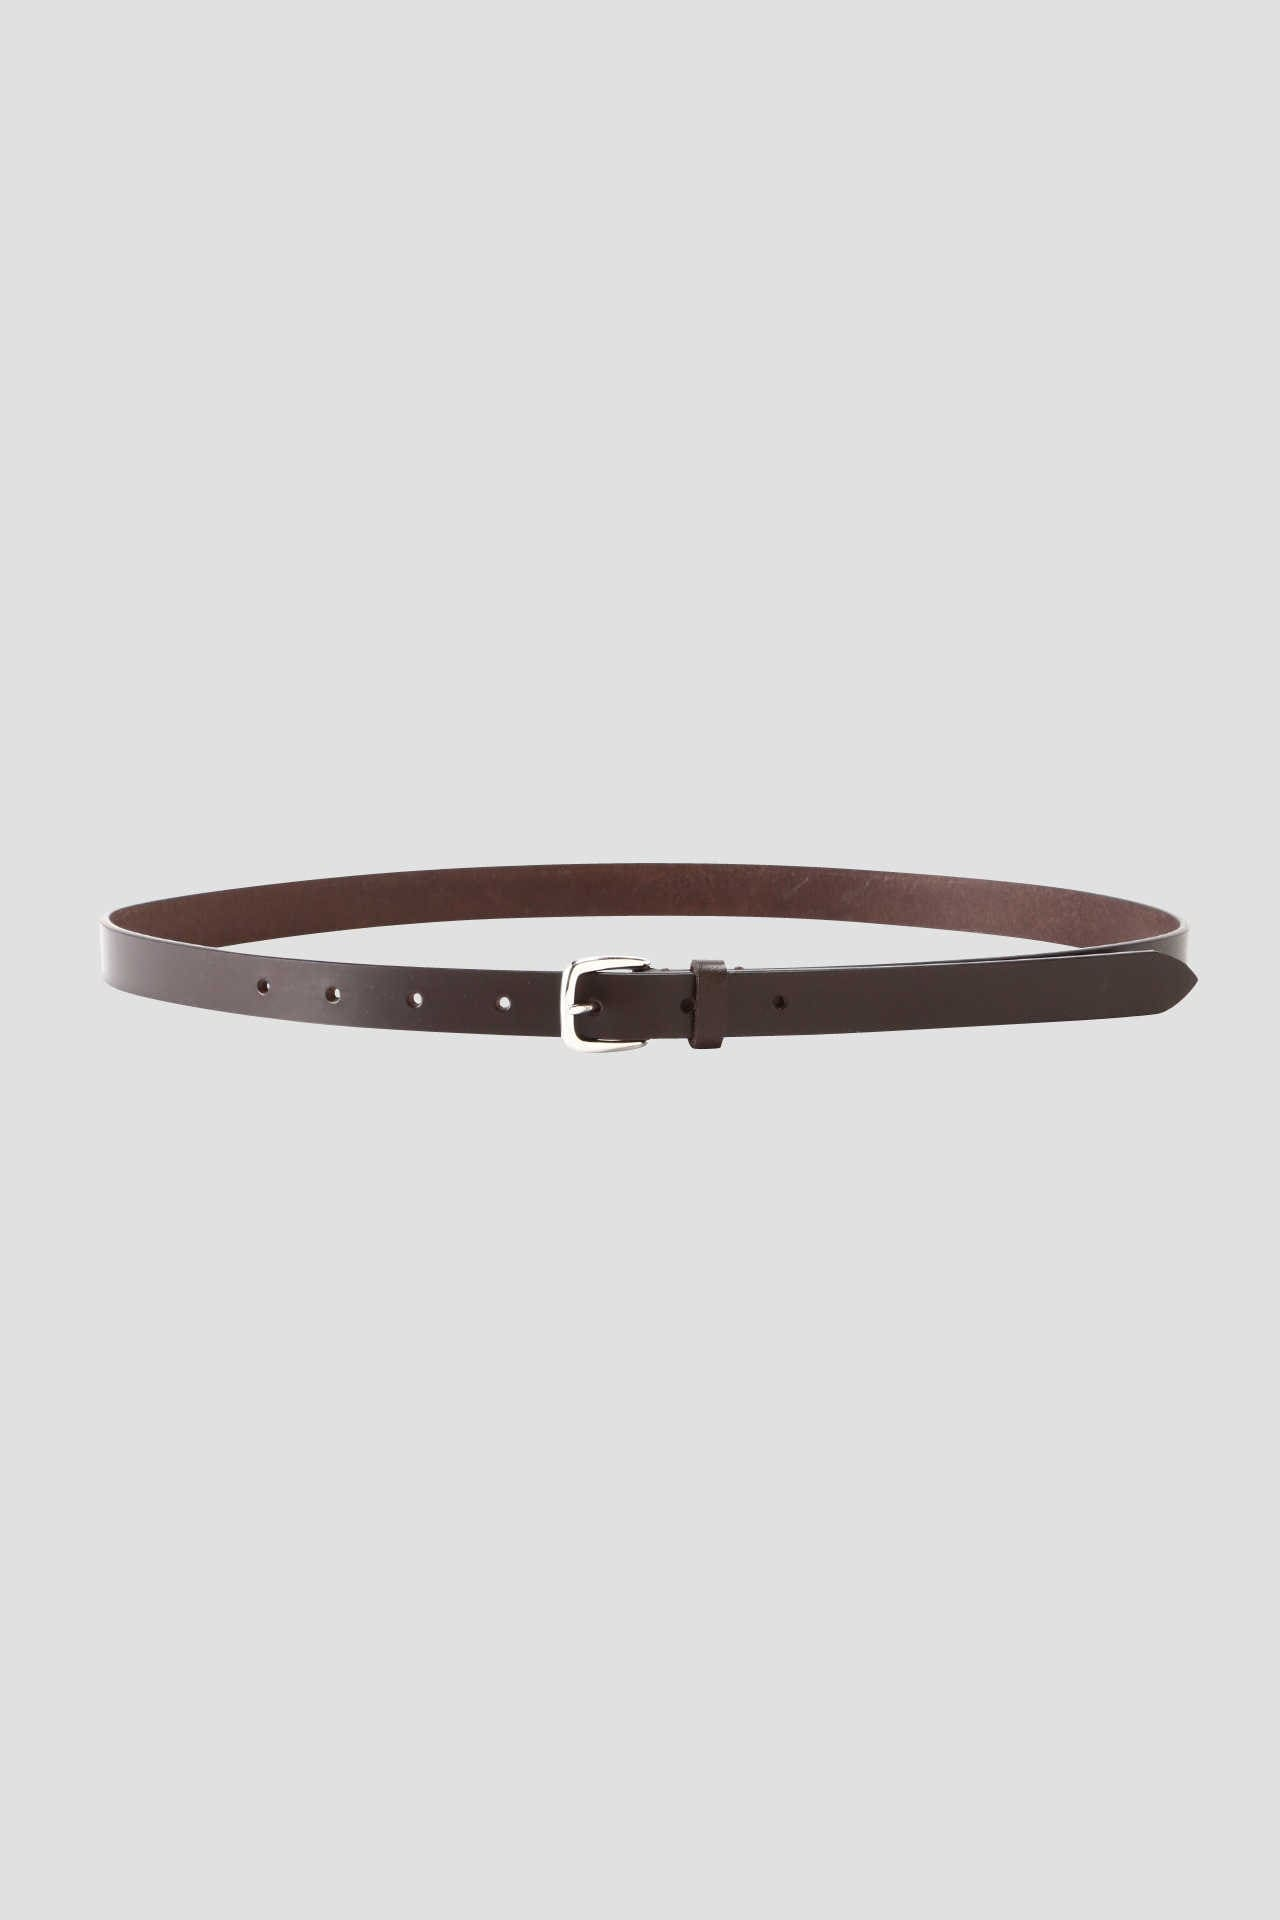 BRIDLE LEATHER BELT5